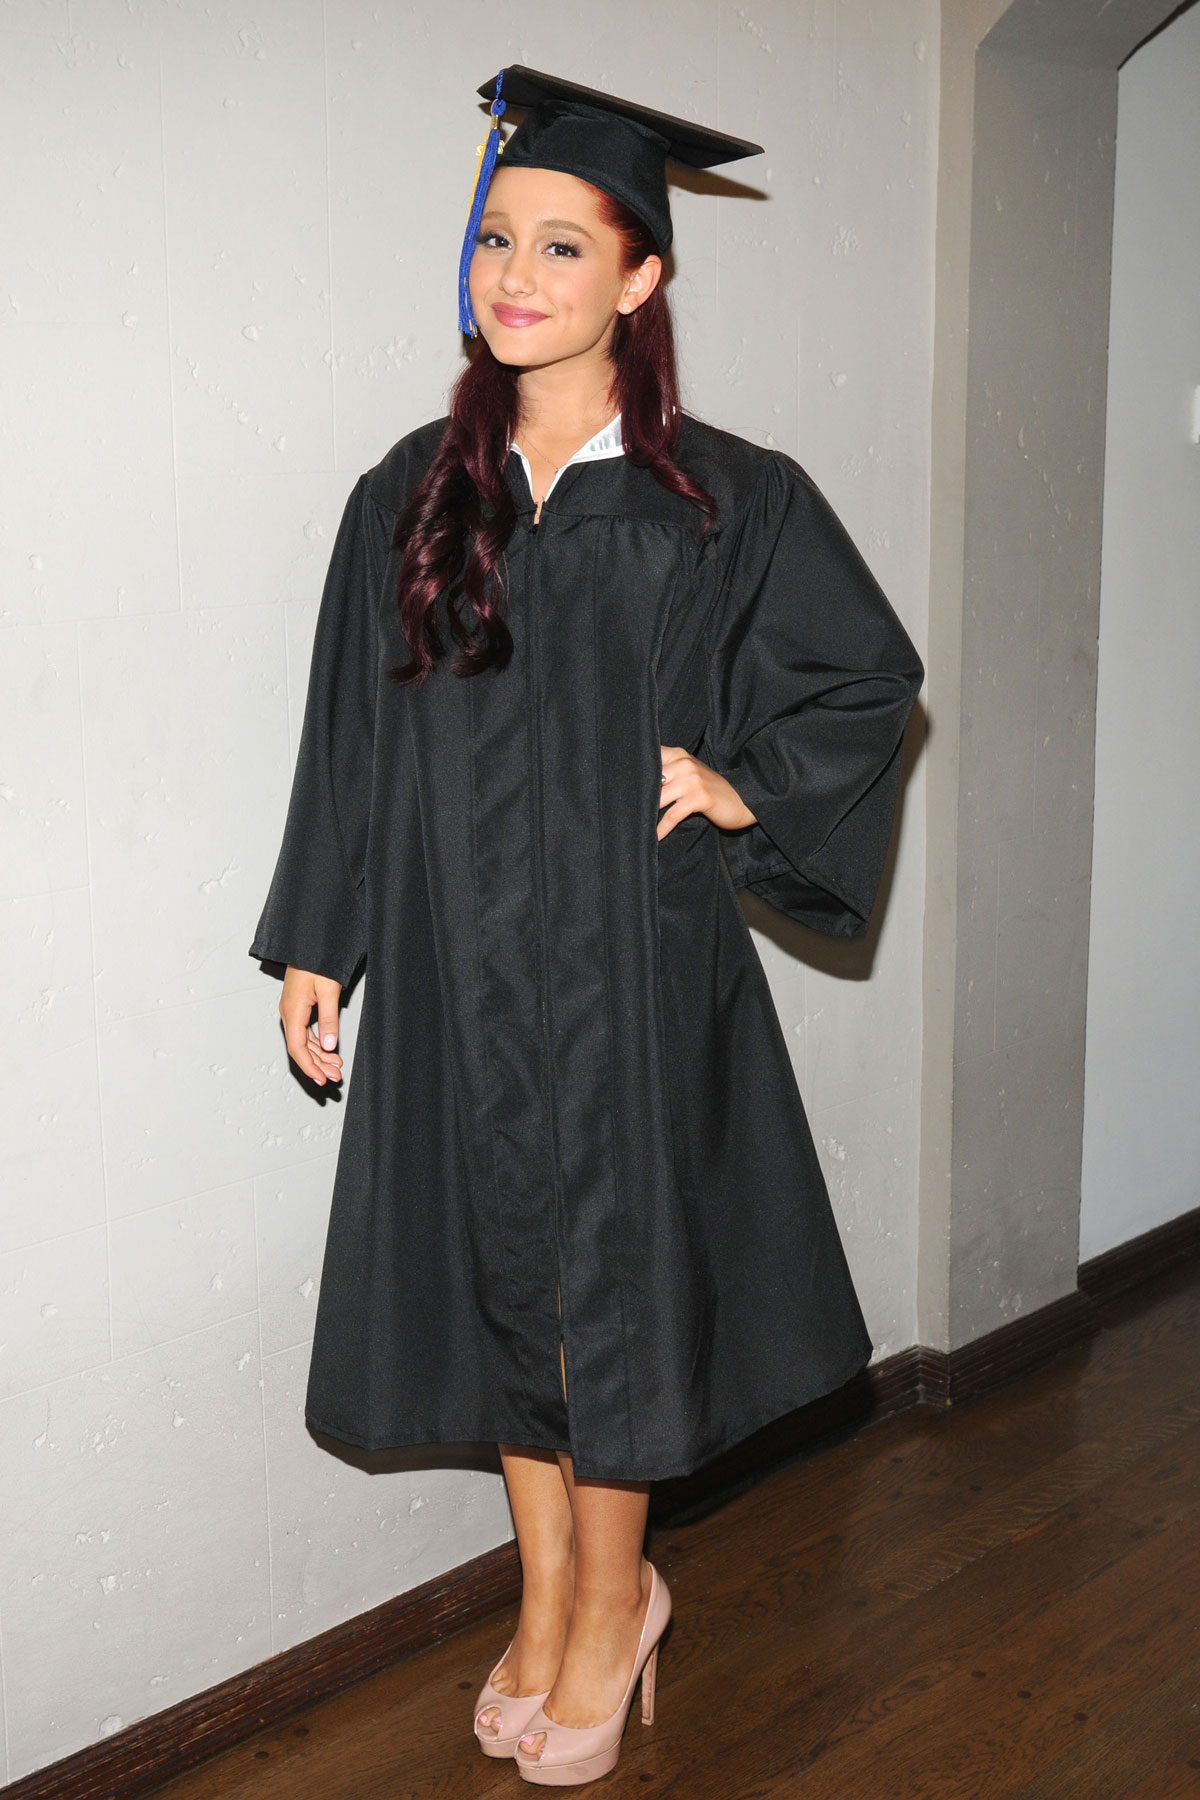 ARIANA GRANDE in Cap and Gown Graduates from High School - HawtCelebs